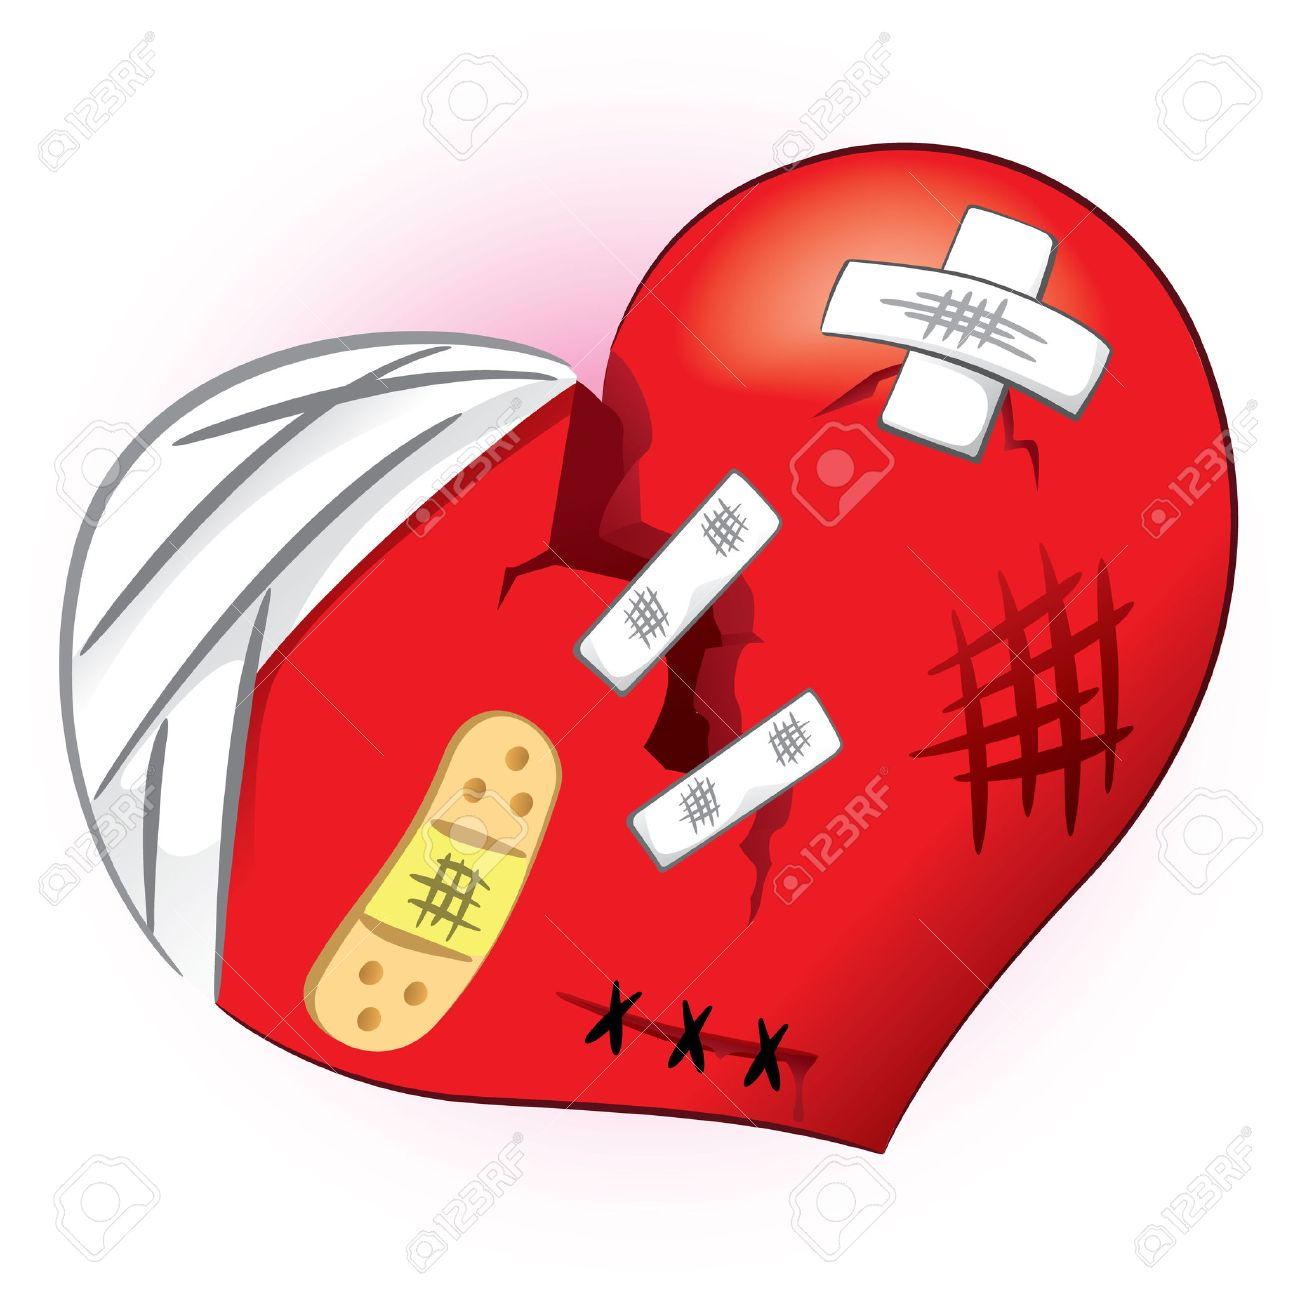 Icon or symbol of a broken heart and bruised ideal for icon or symbol of a broken heart and bruised ideal for informational and institutional related buycottarizona